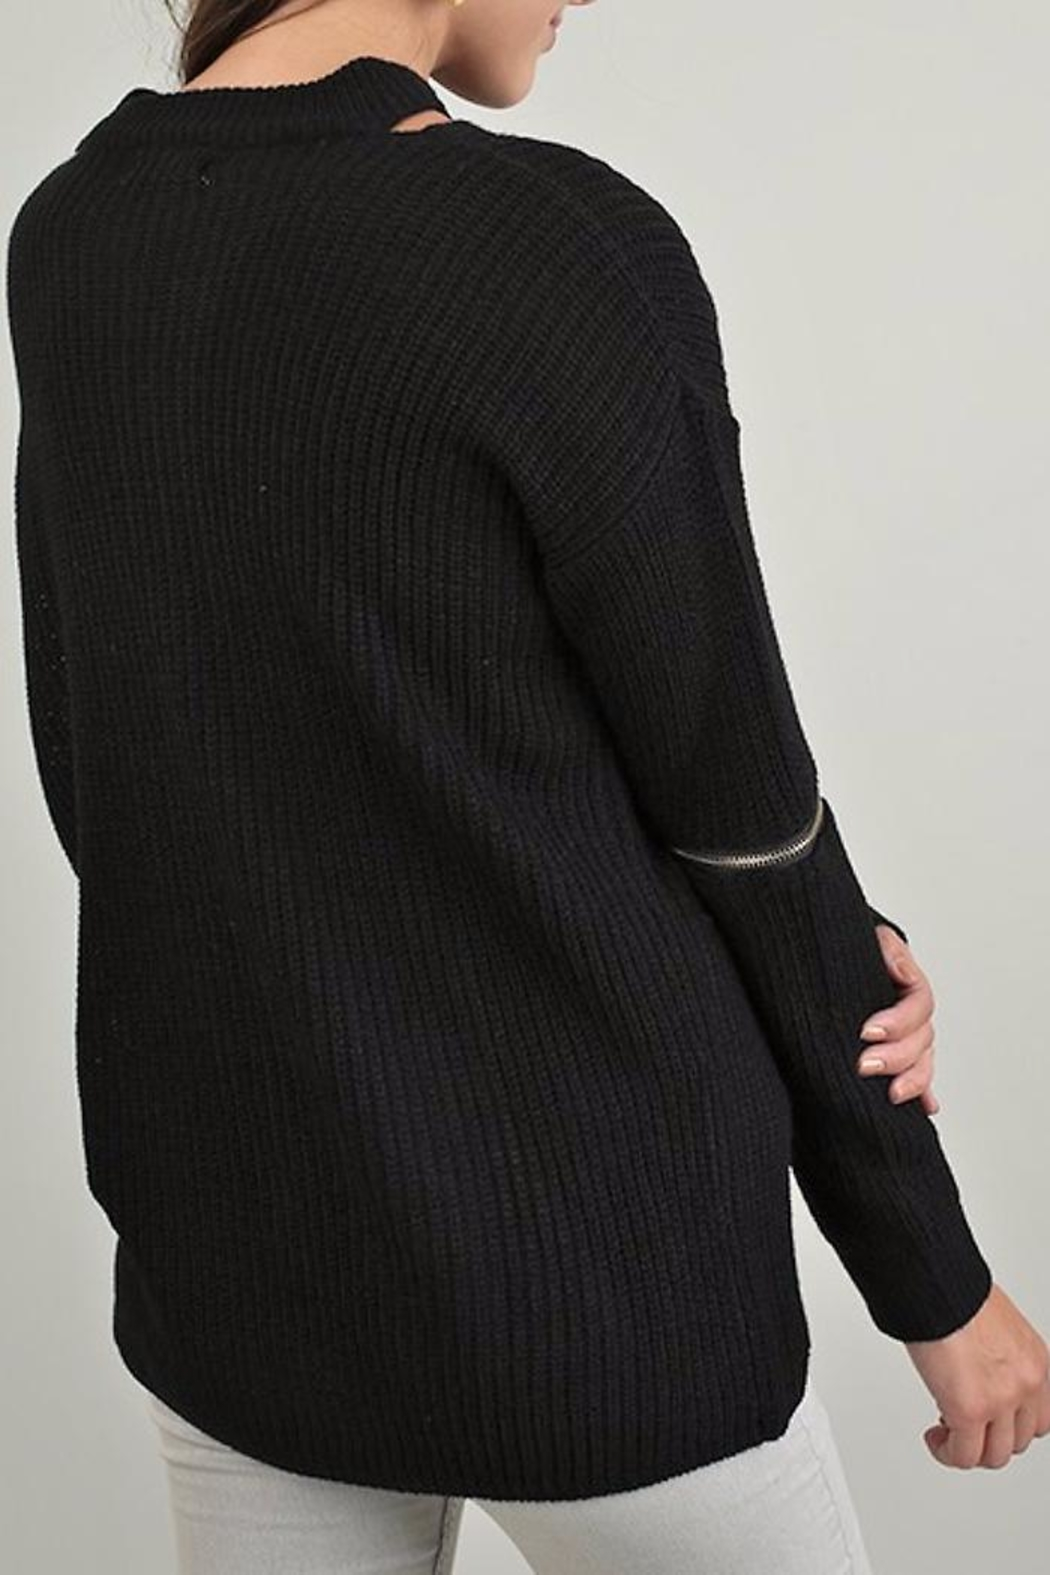 People Outfitter Knit Zipper Sweater - Front Full Image